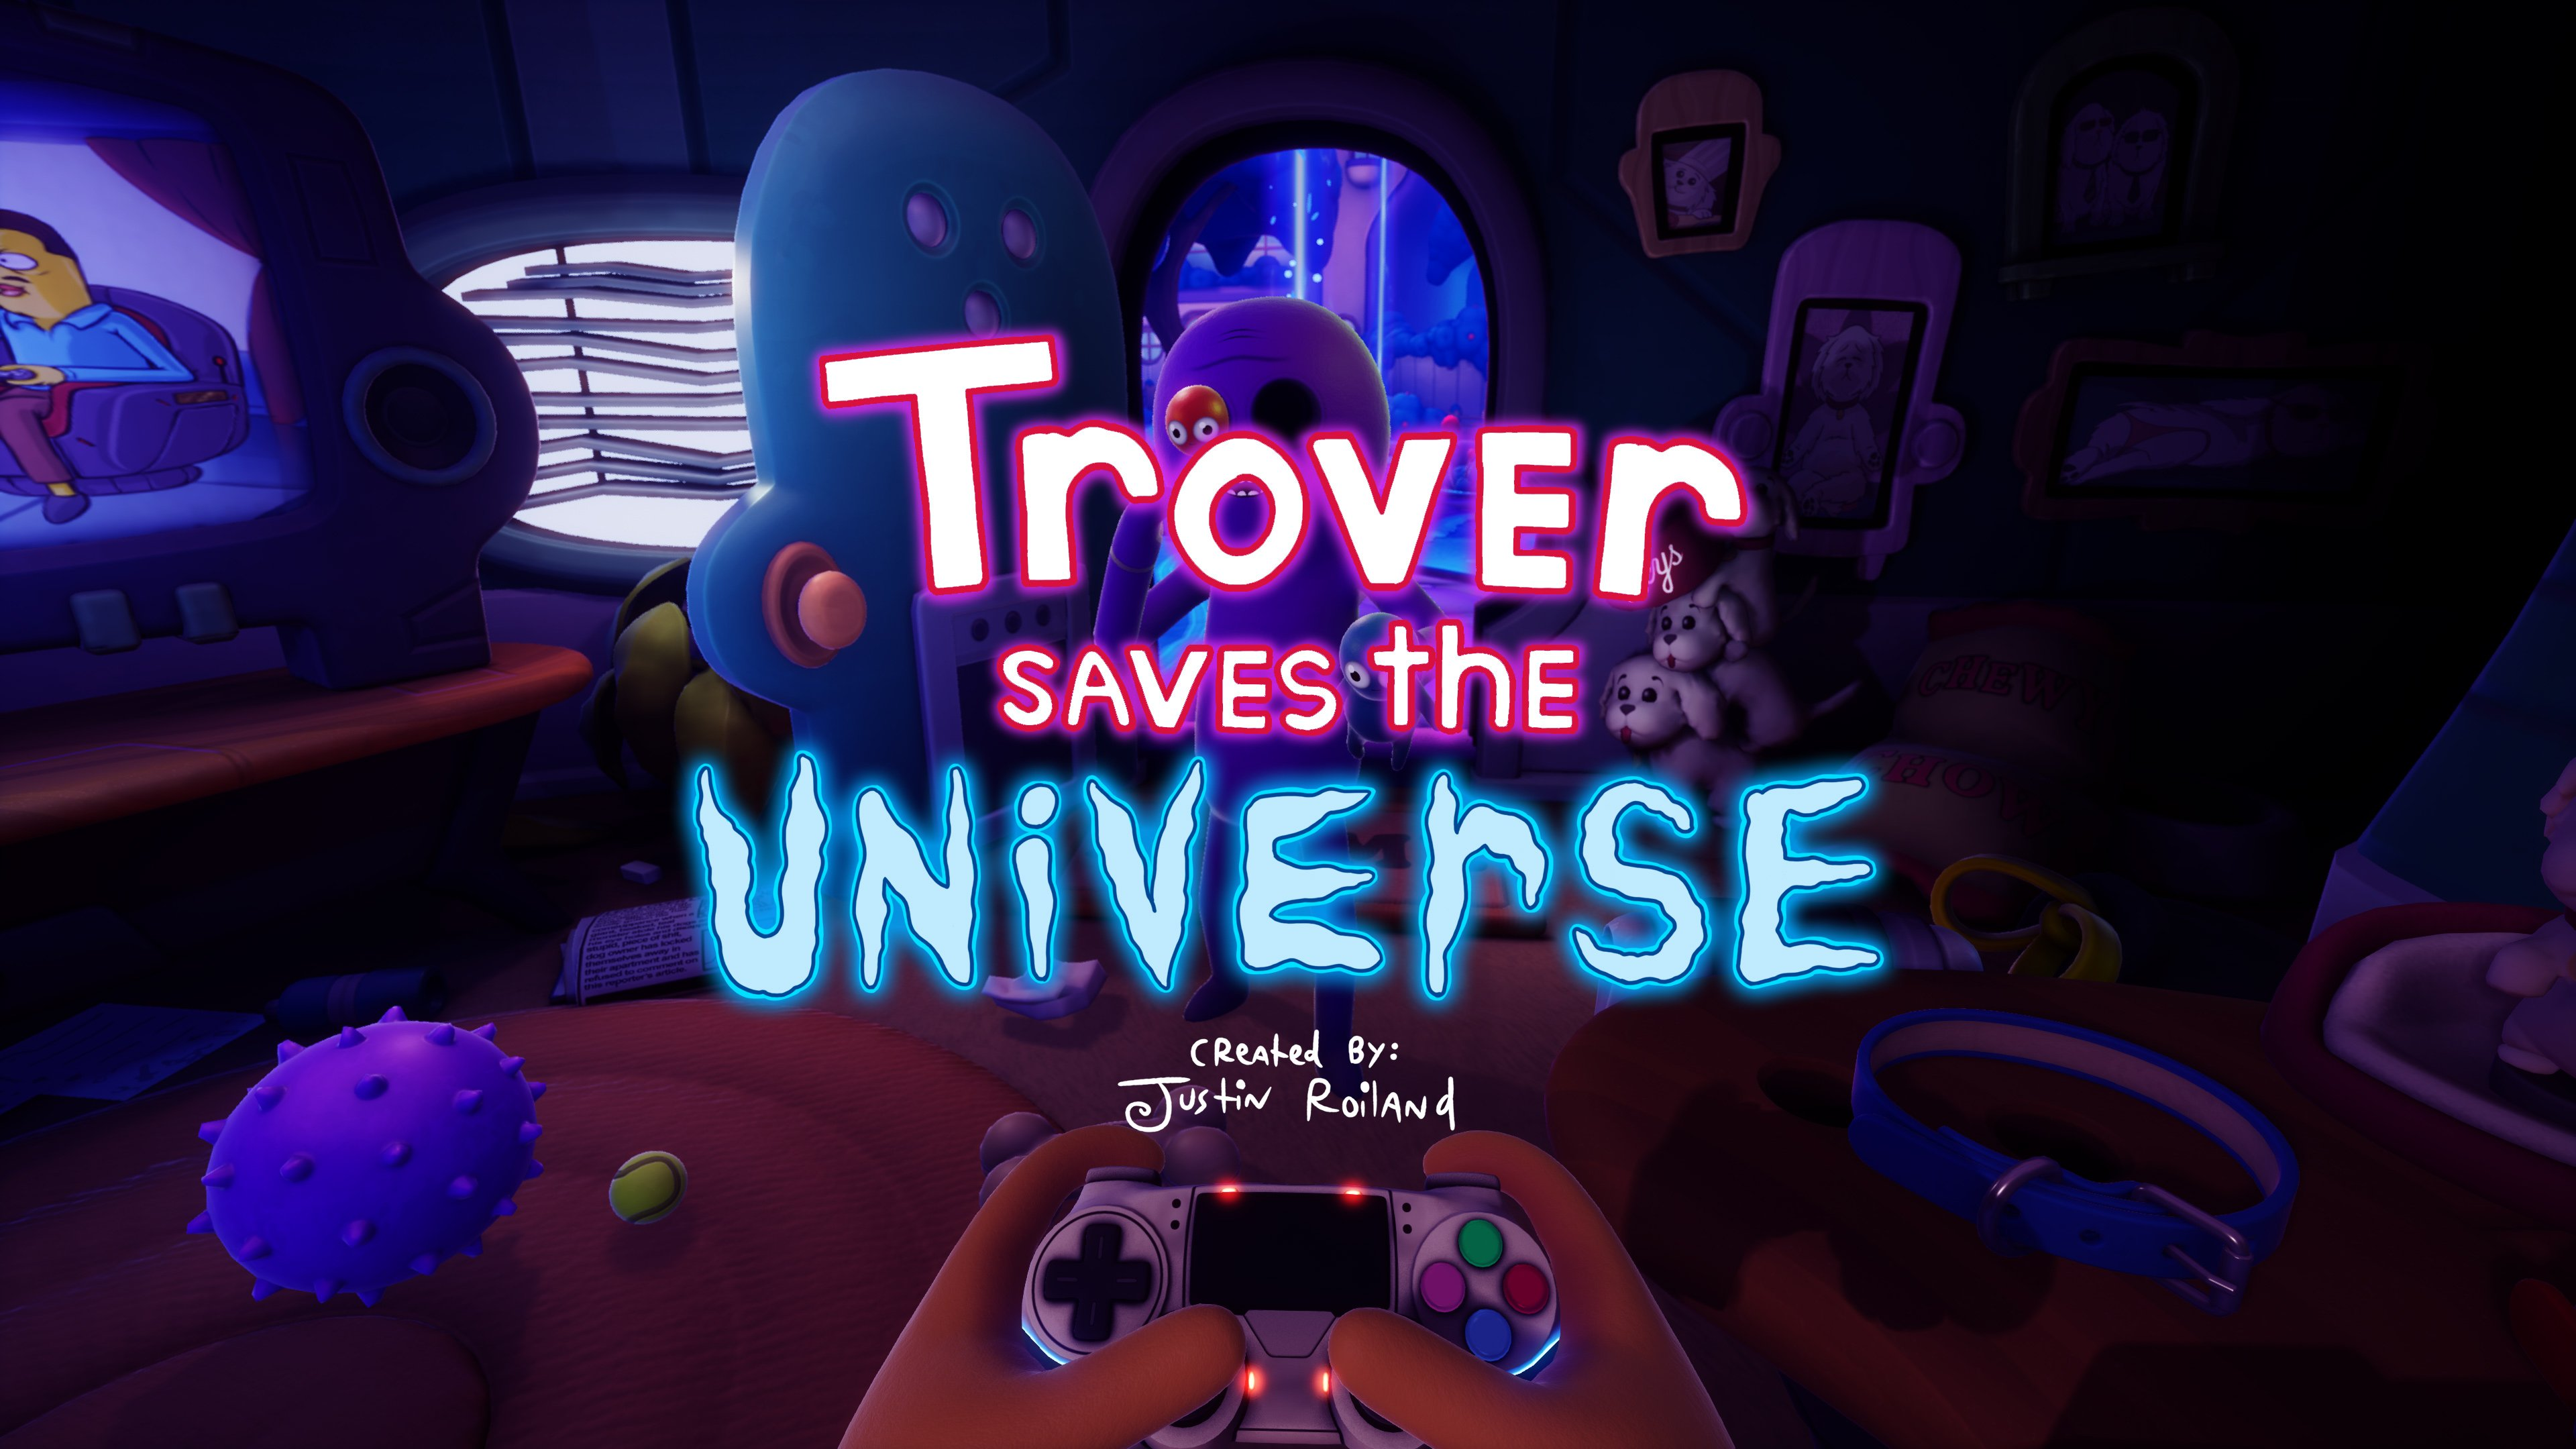 Trover Saves The Universe: How Rick & Morty's Justin Roiland